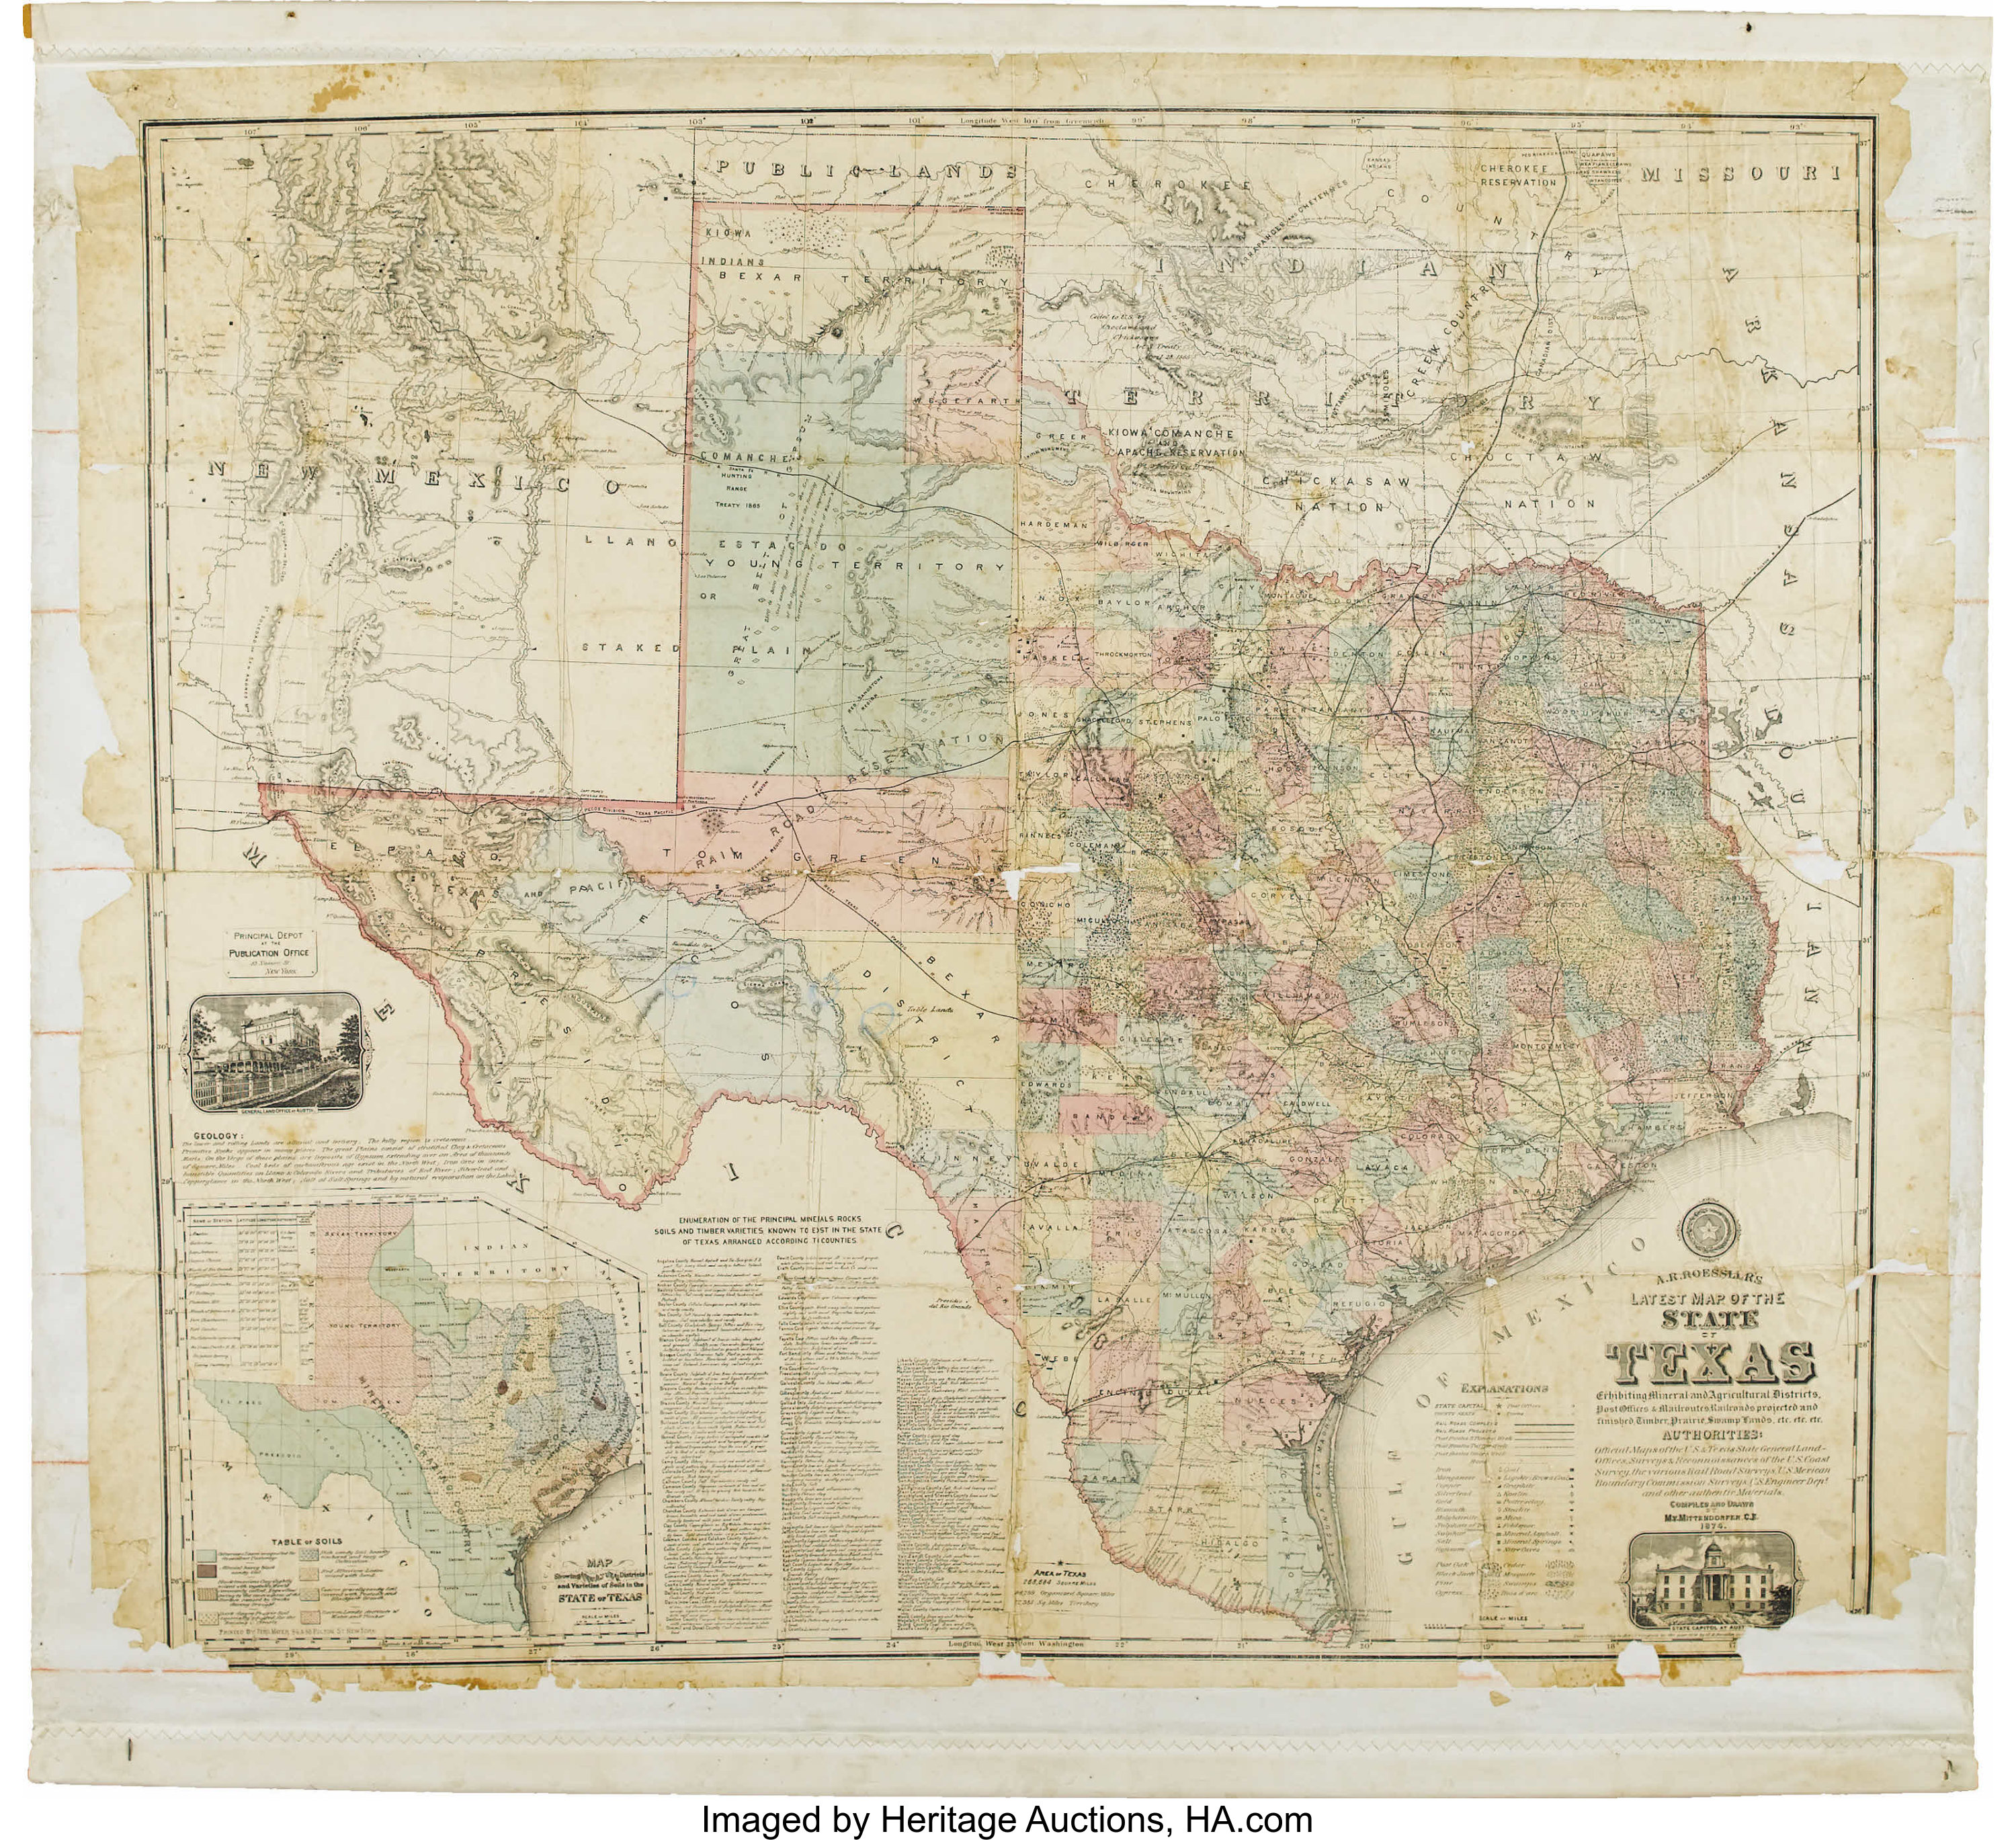 A Map Of The State Of Texas.A R Roessler S Latest Map Of The State Of Texas 1874 Lot